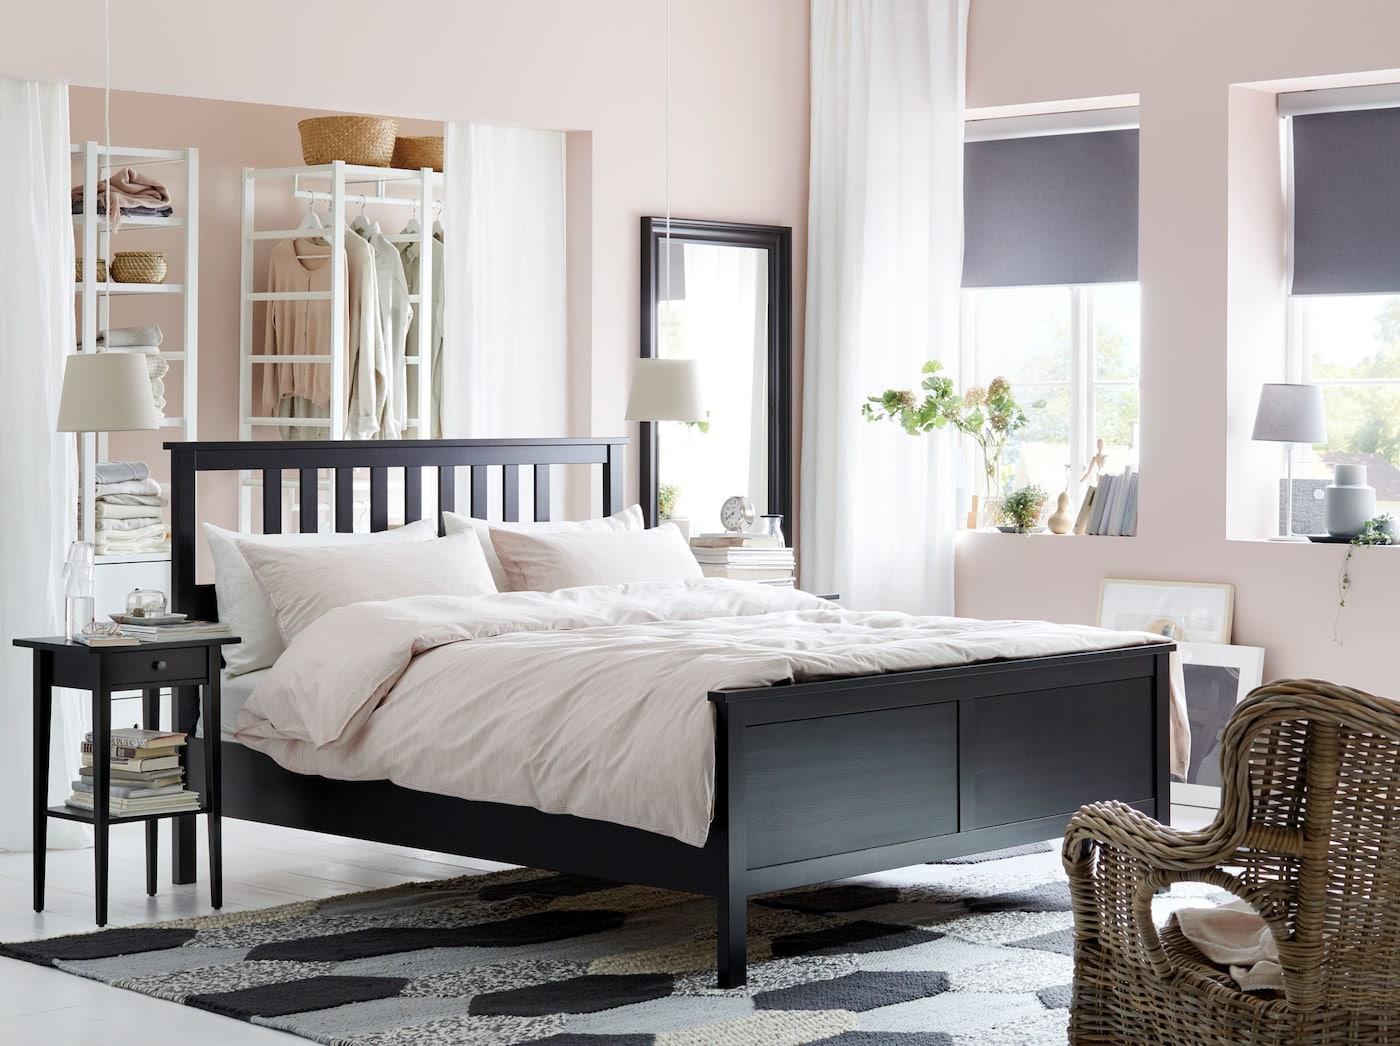 Superbe A Stylish Bedroom From All Angles